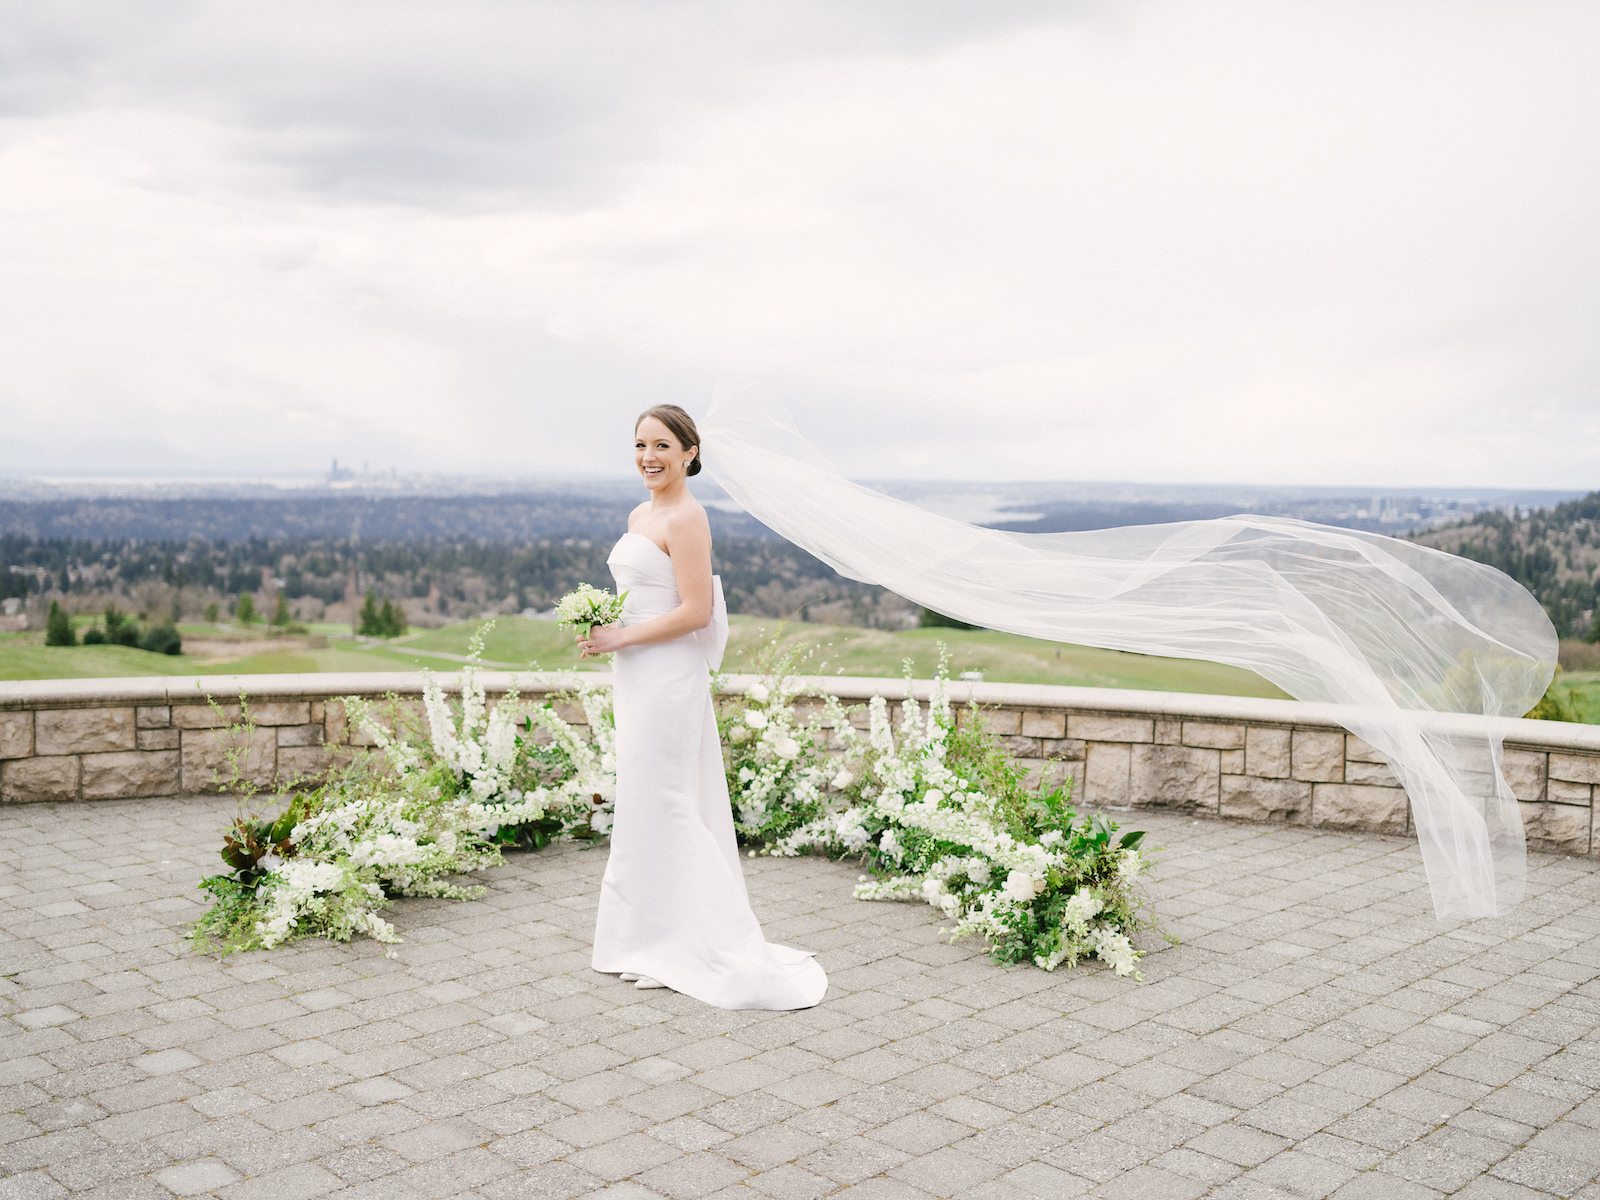 Bride holding a Lily of the Valley bouquet, in front of her grounded wedding floral arch, her veil blowing in the wind